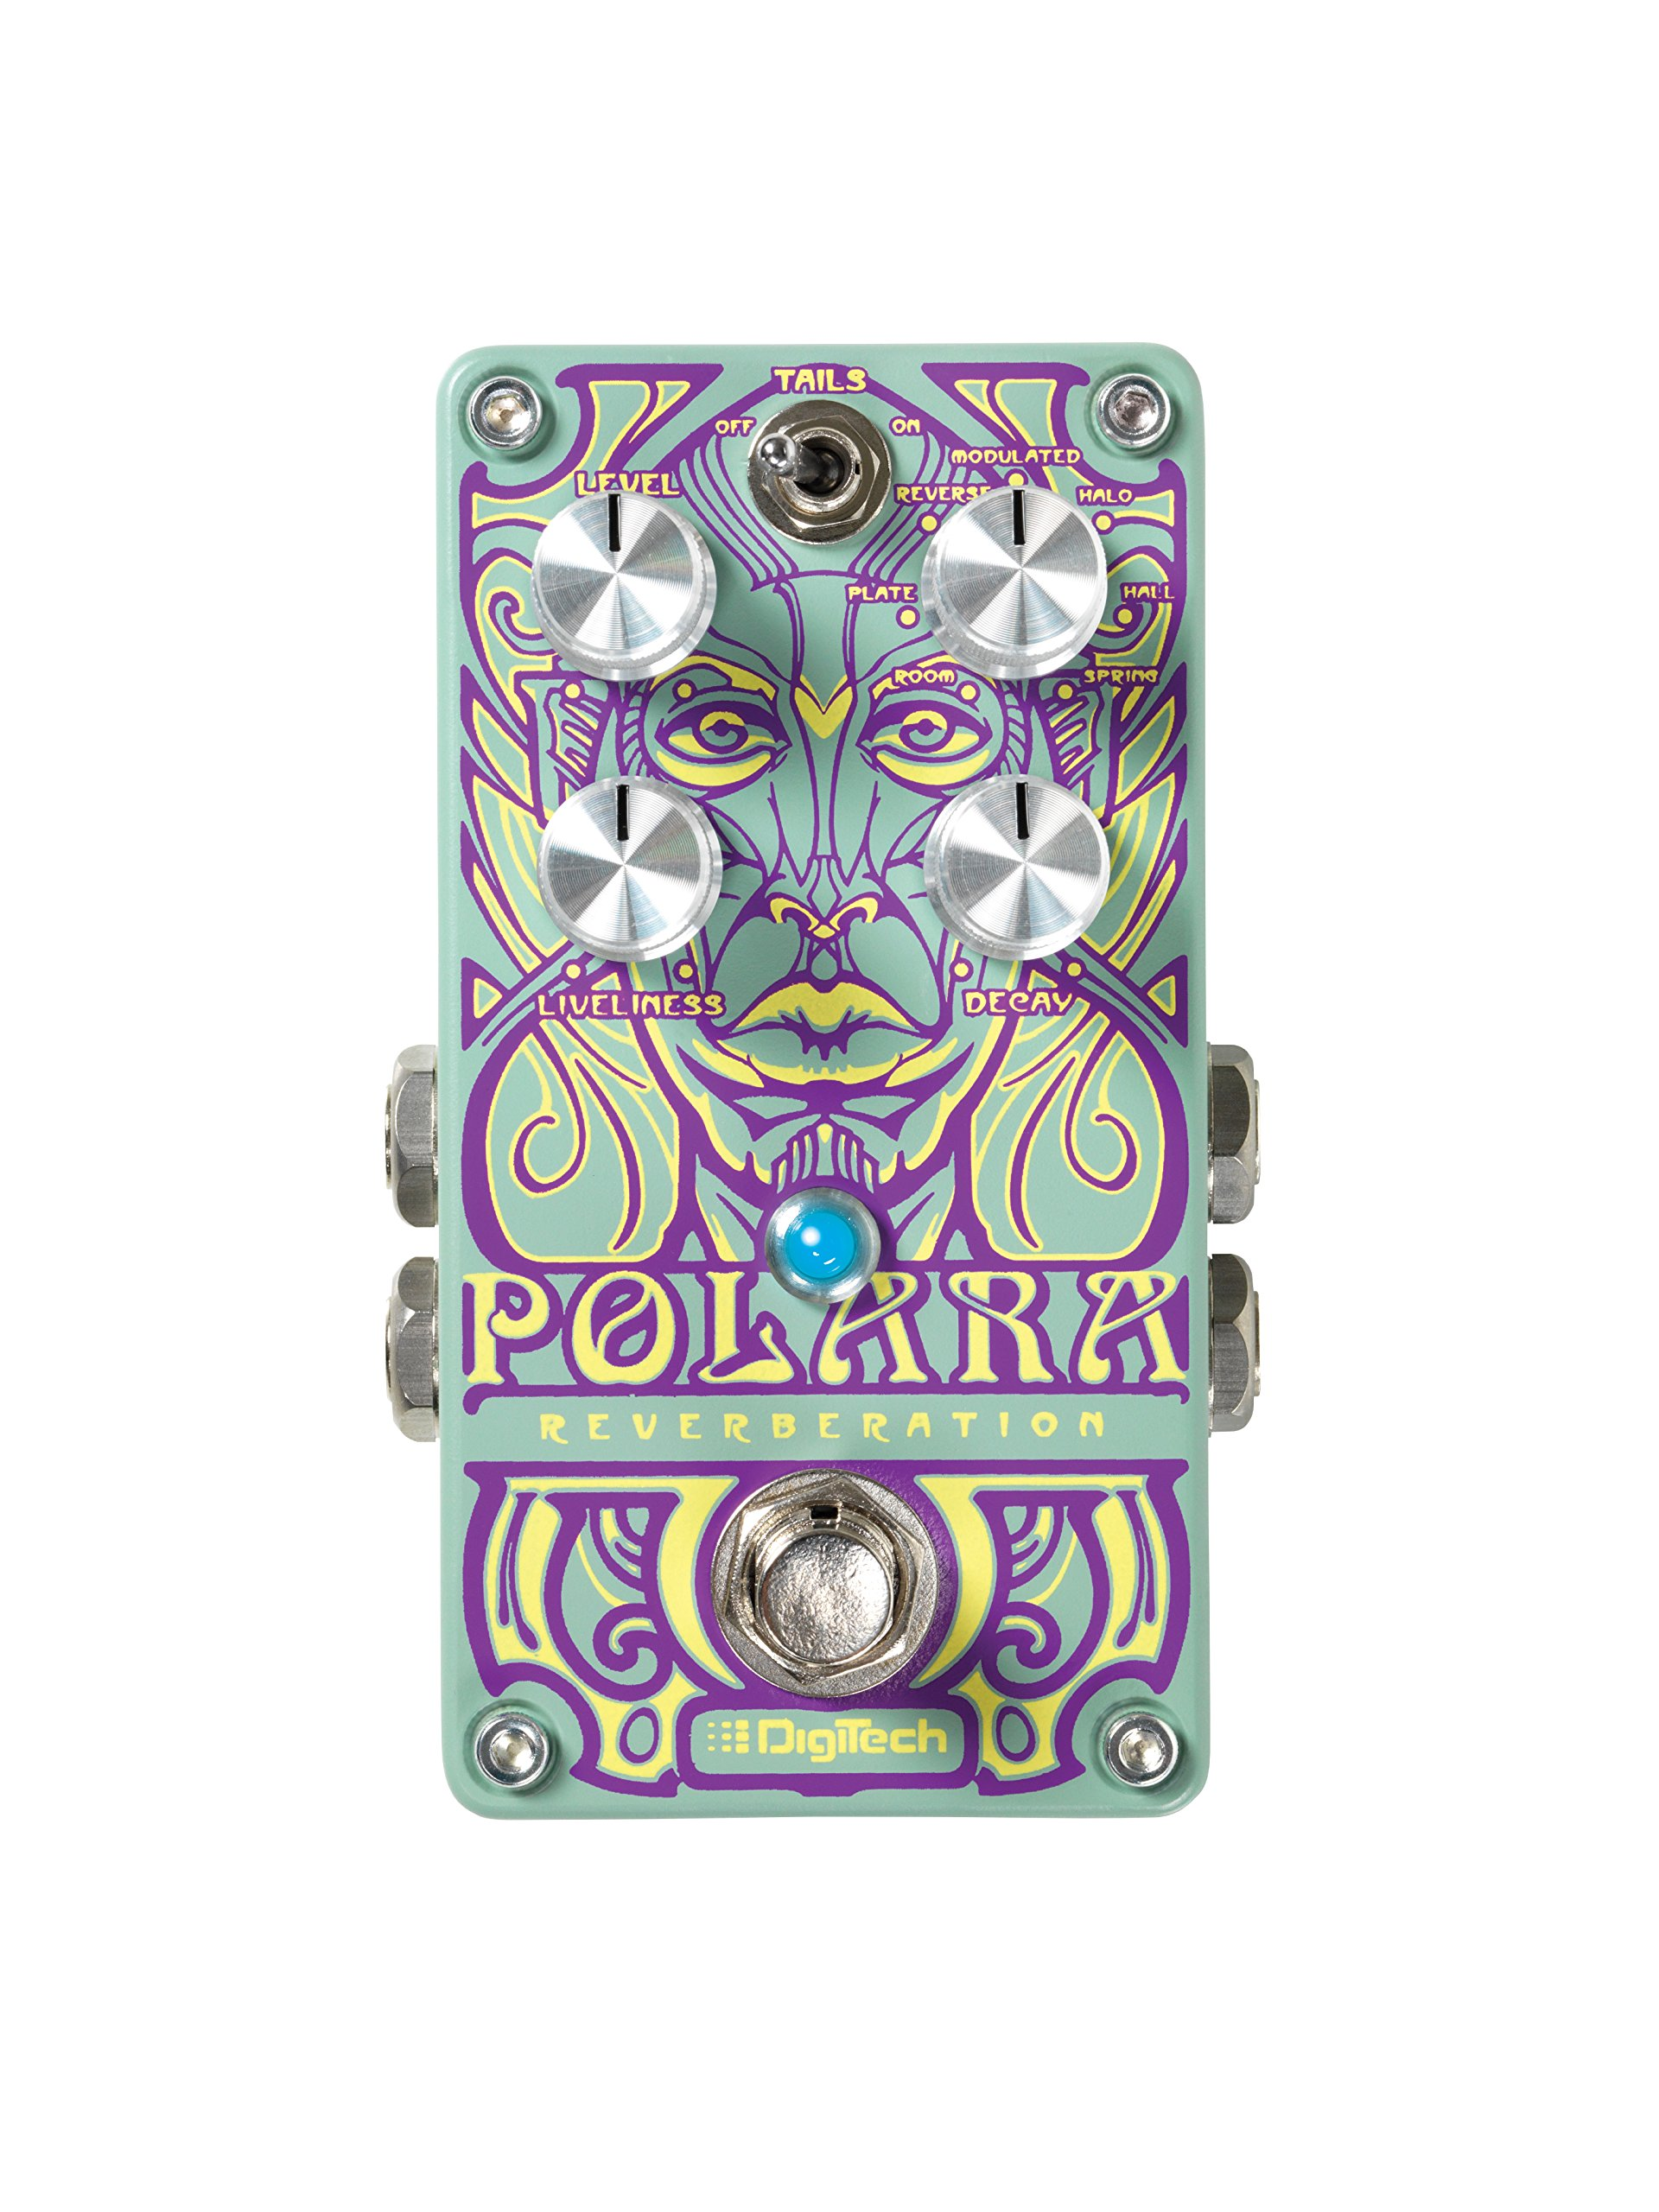 Digitech POLARA Lexicon Reverbs Stereo Pedal with On/Off Switch by DigiTech